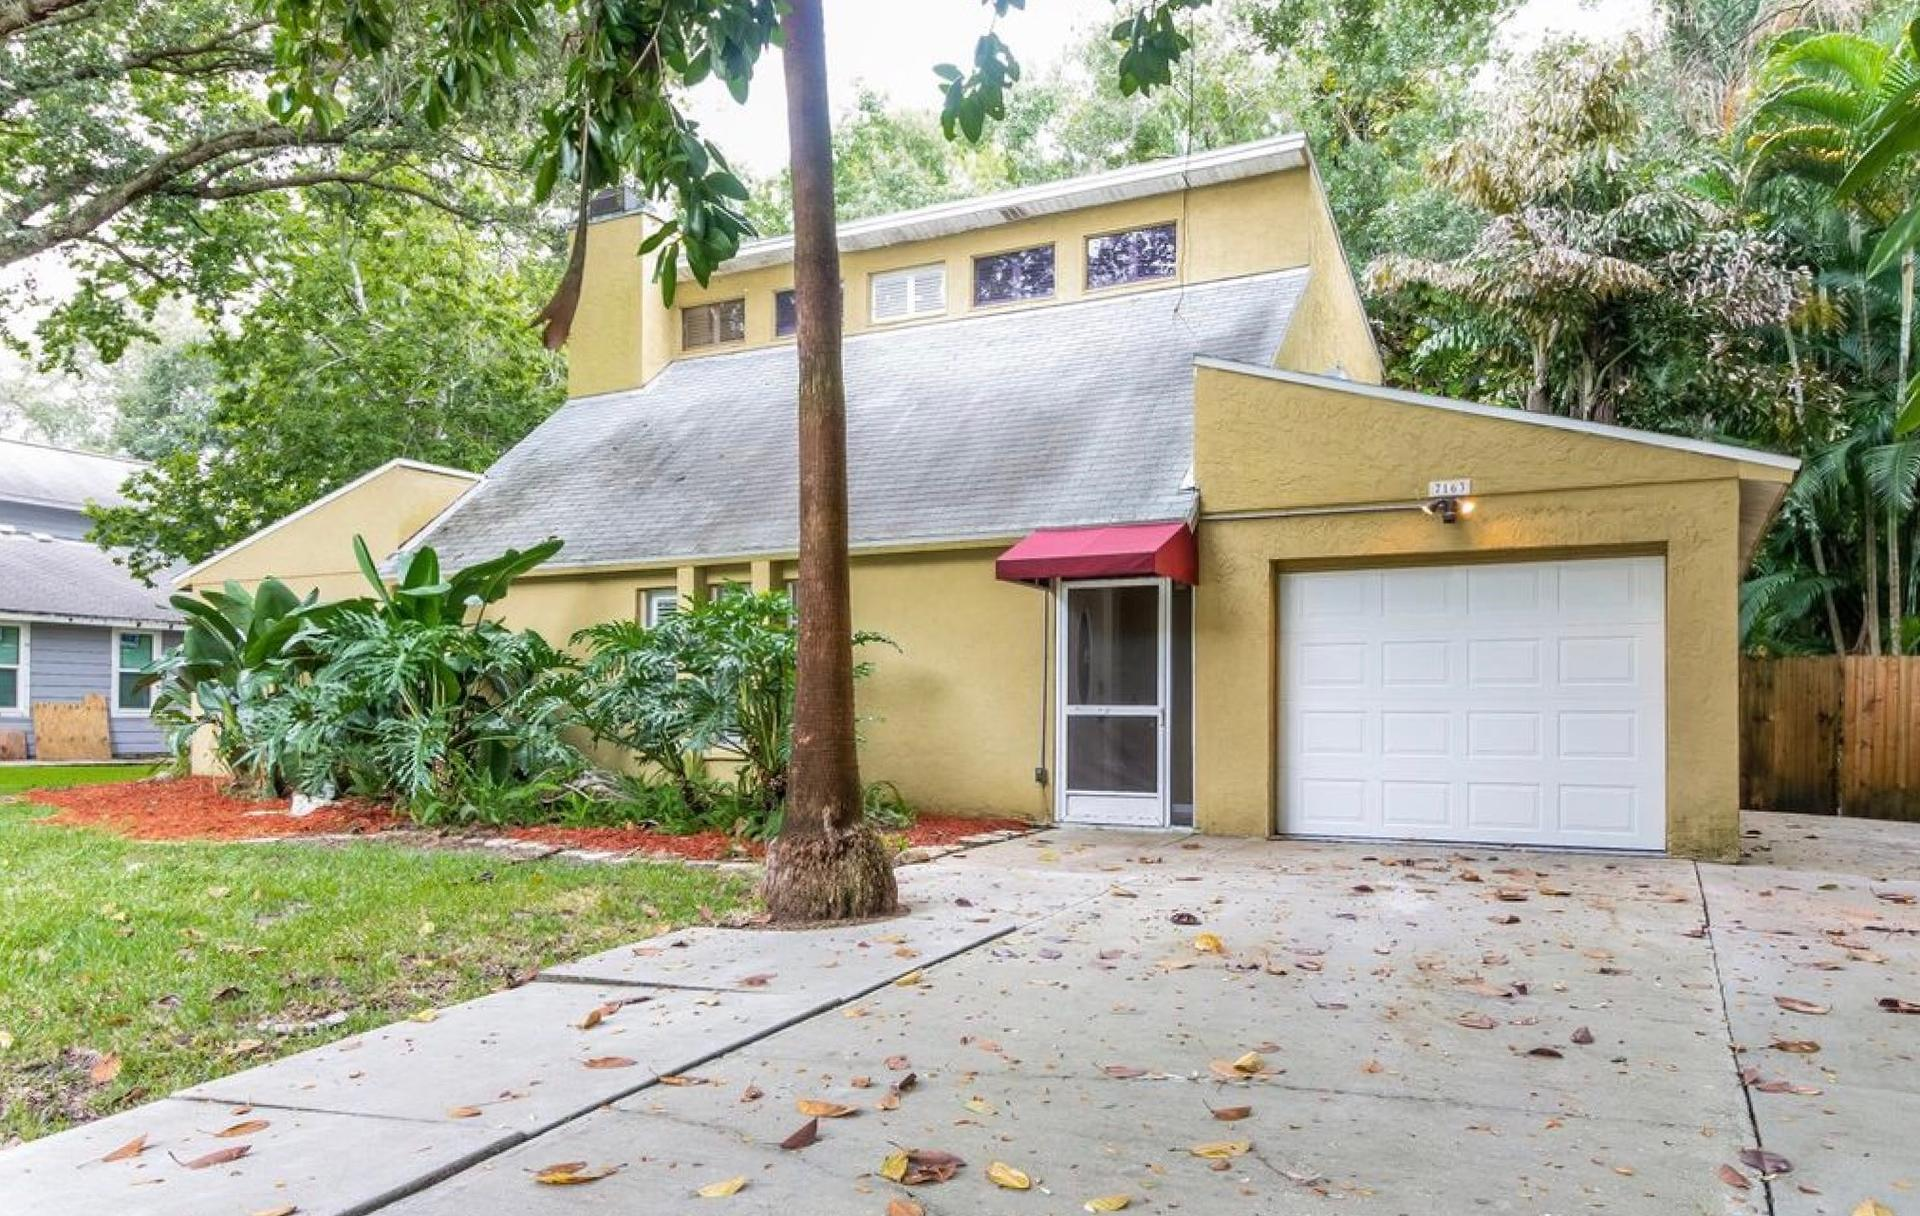 Photo of property: 7163 Jarvis Rd, Sarasota, FL 34241